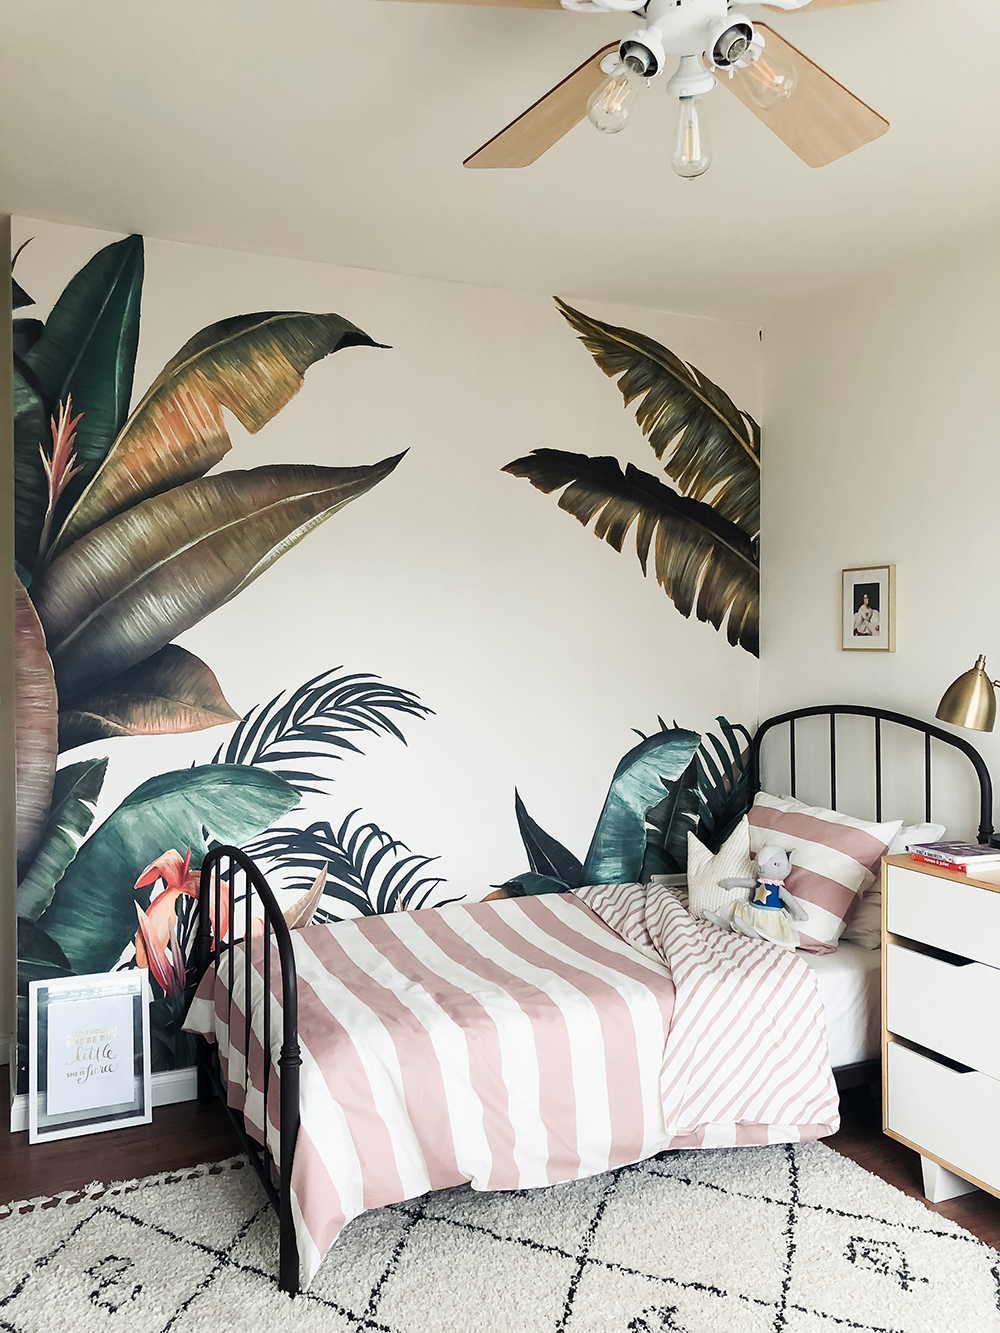 Tropical by Lemon wallpaper gifted by Photowall in this modern and playful kids room! Striped pink and white bedding from H&M Home and a Moroccan shag rug from Rugs USA